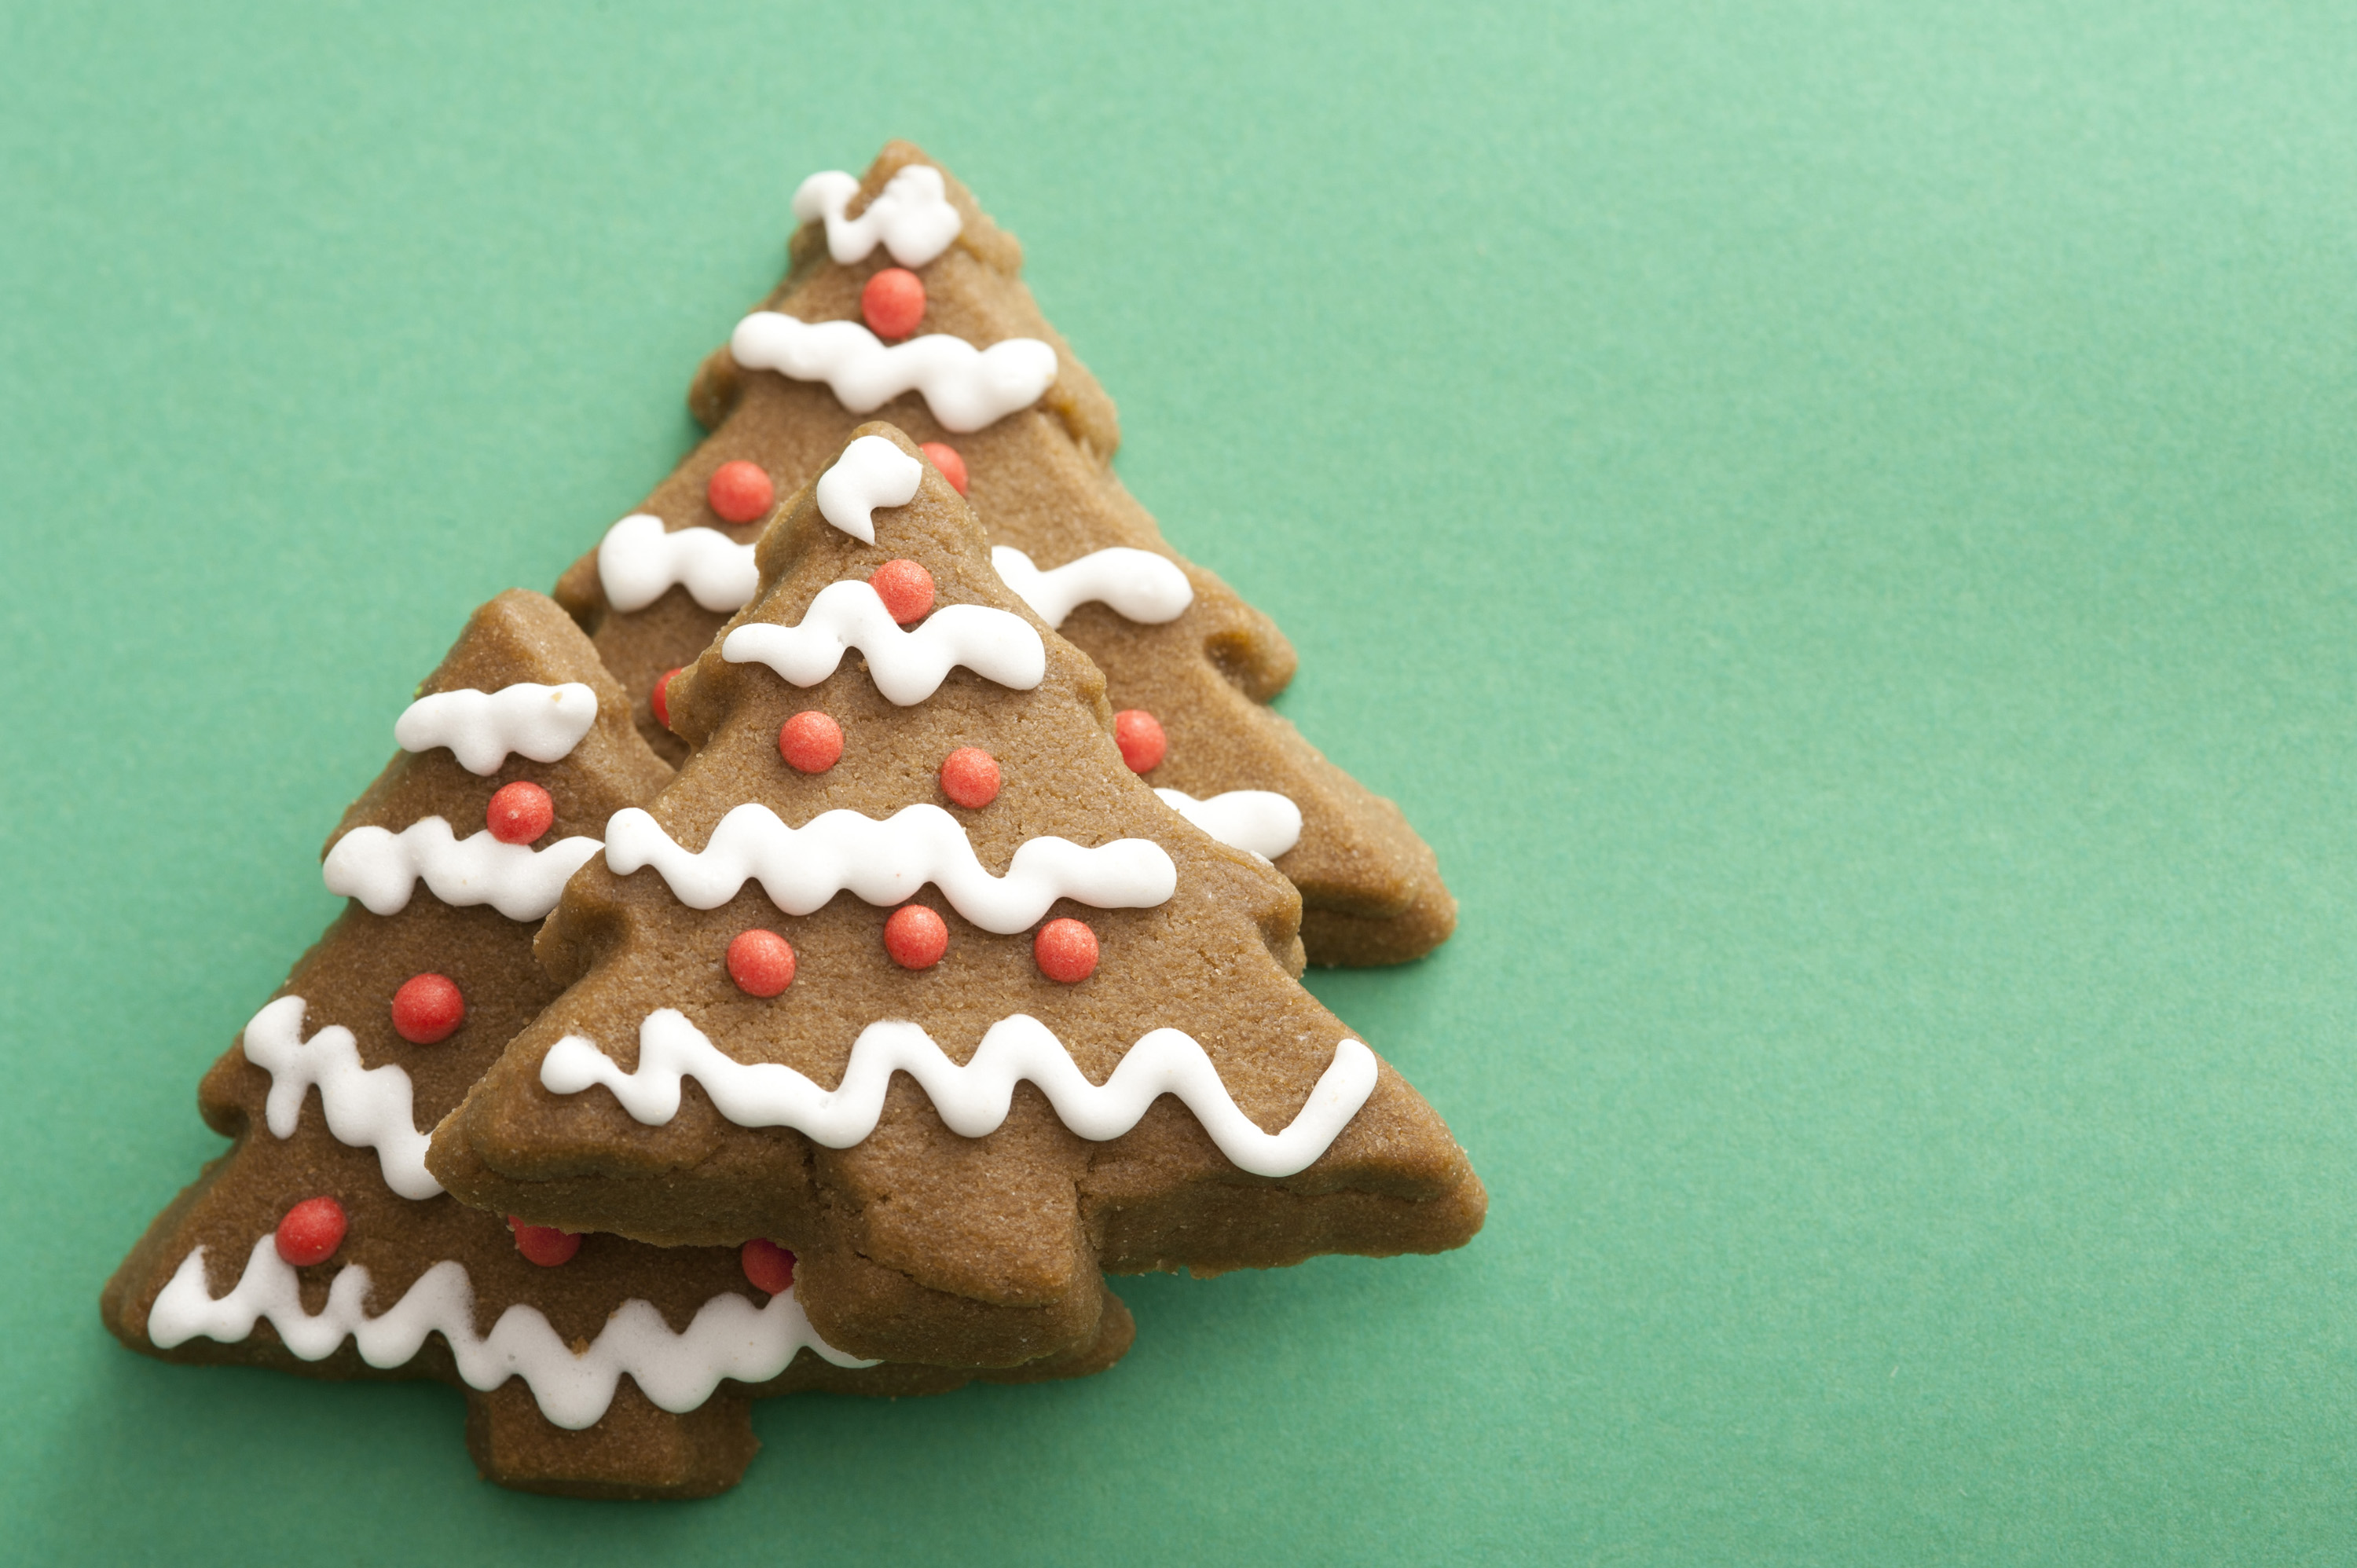 Photo Of Decorative Iced Gingerbread Christmas Tree